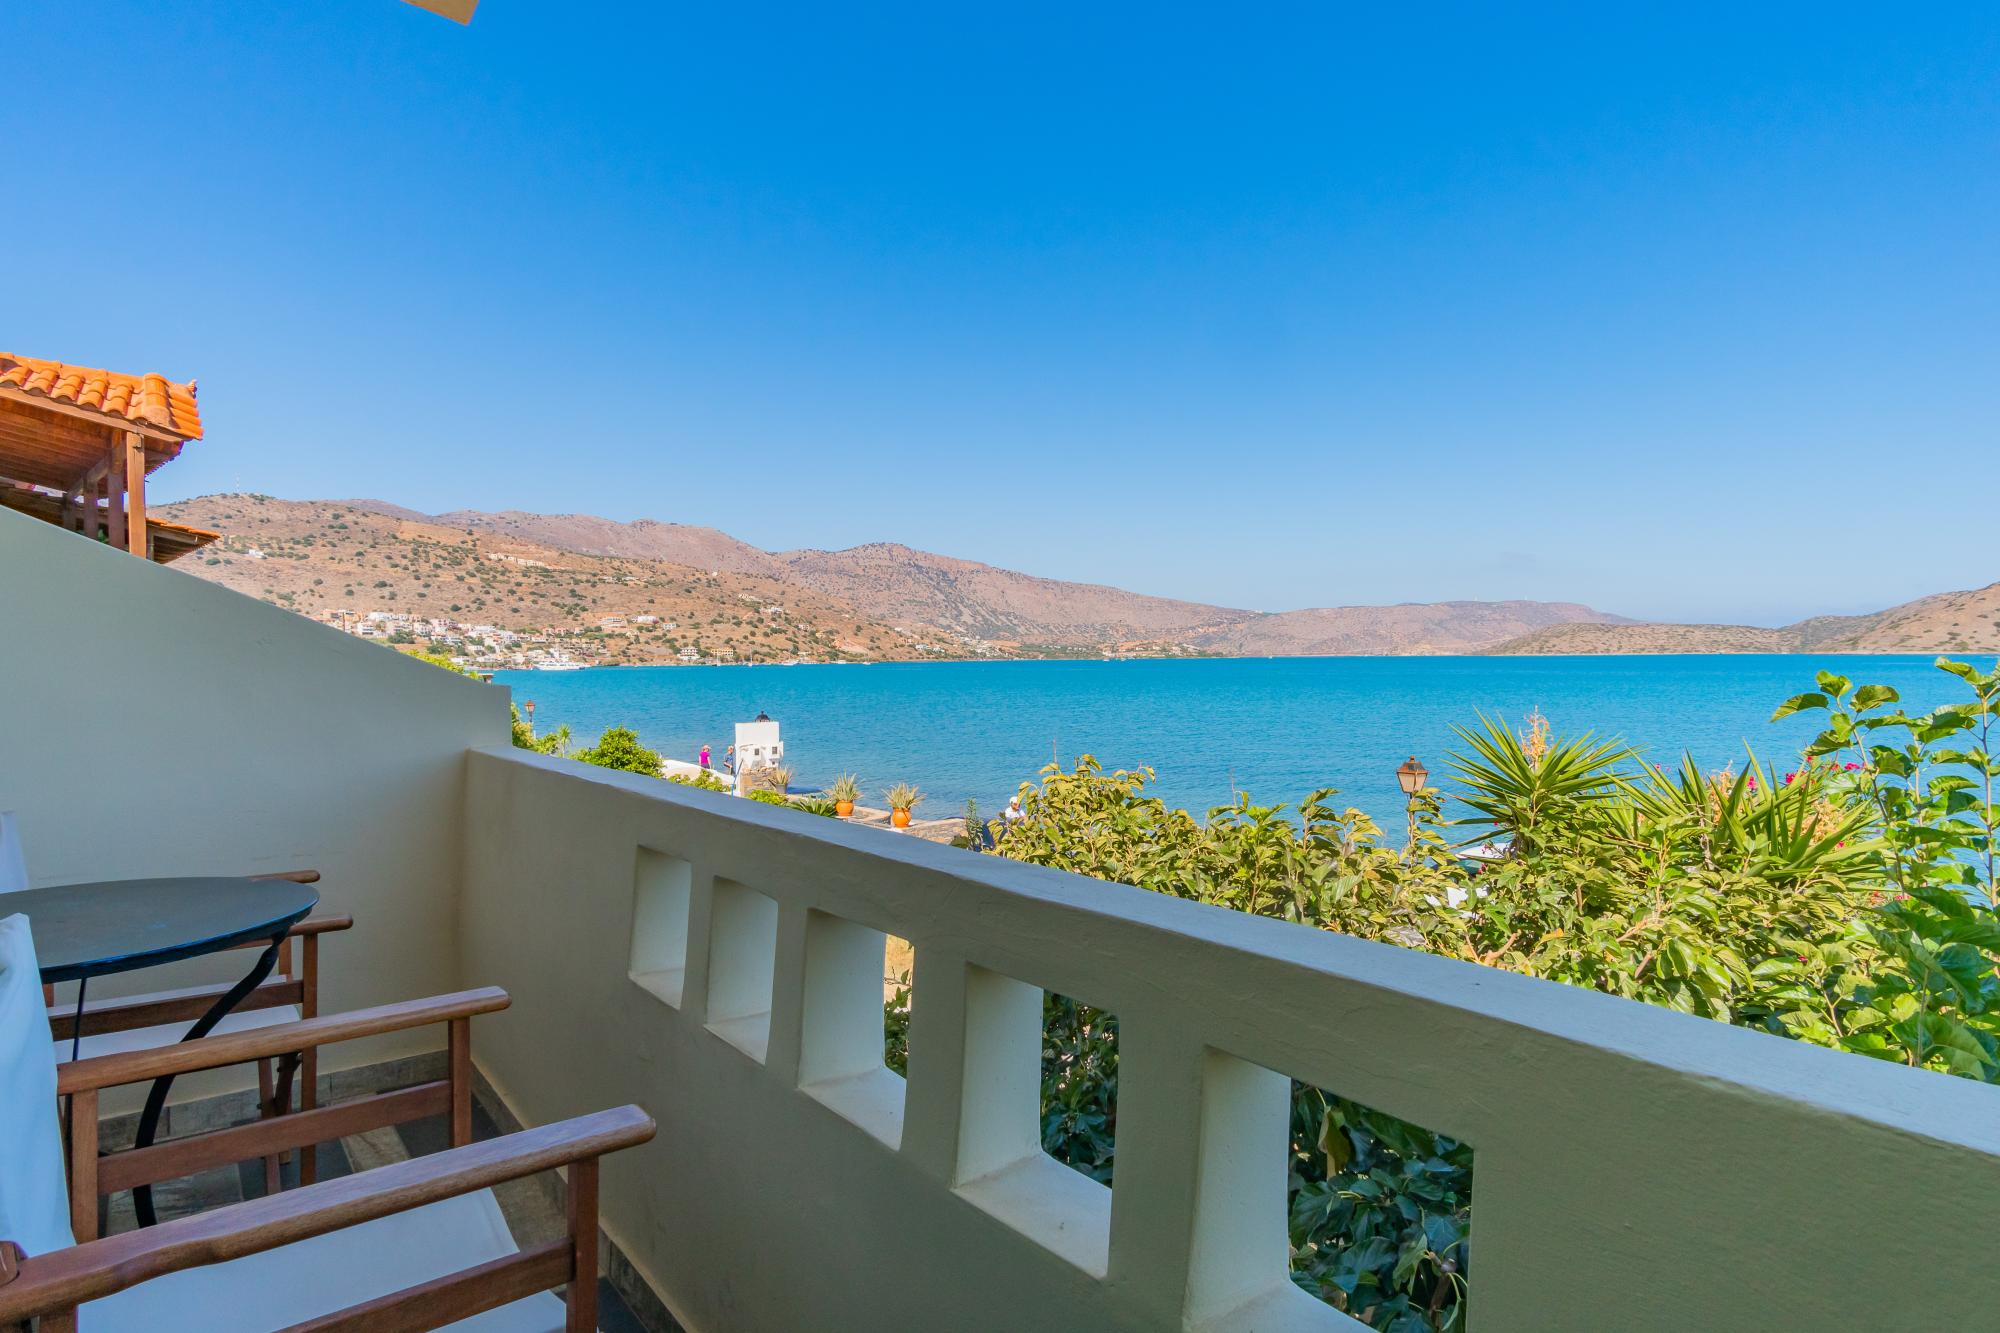 8 apartments and a tavern for sale, in prestige location. Elounda